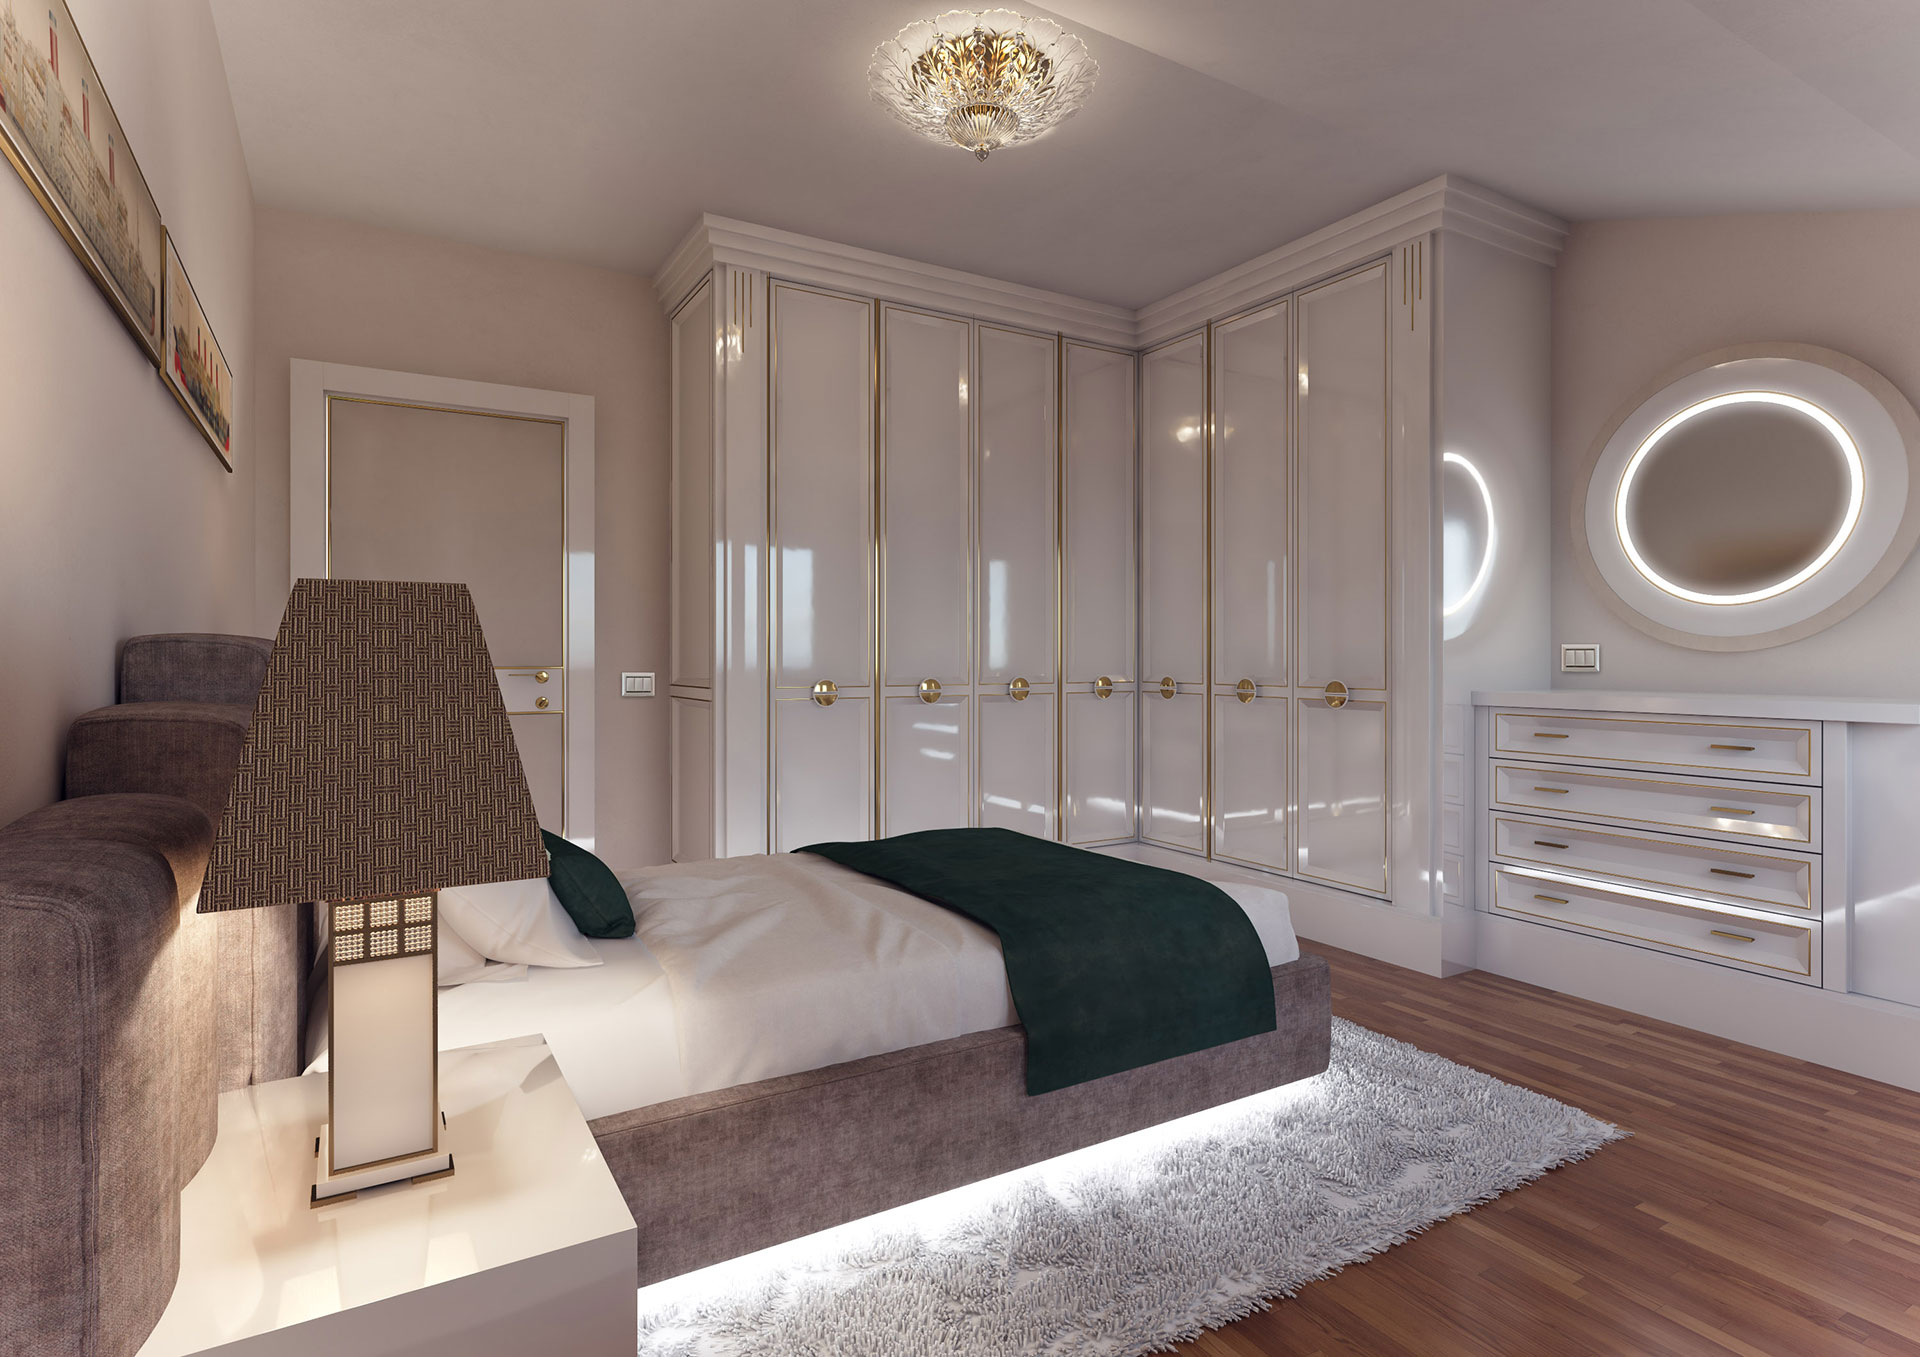 Faoma small modern white bedroom